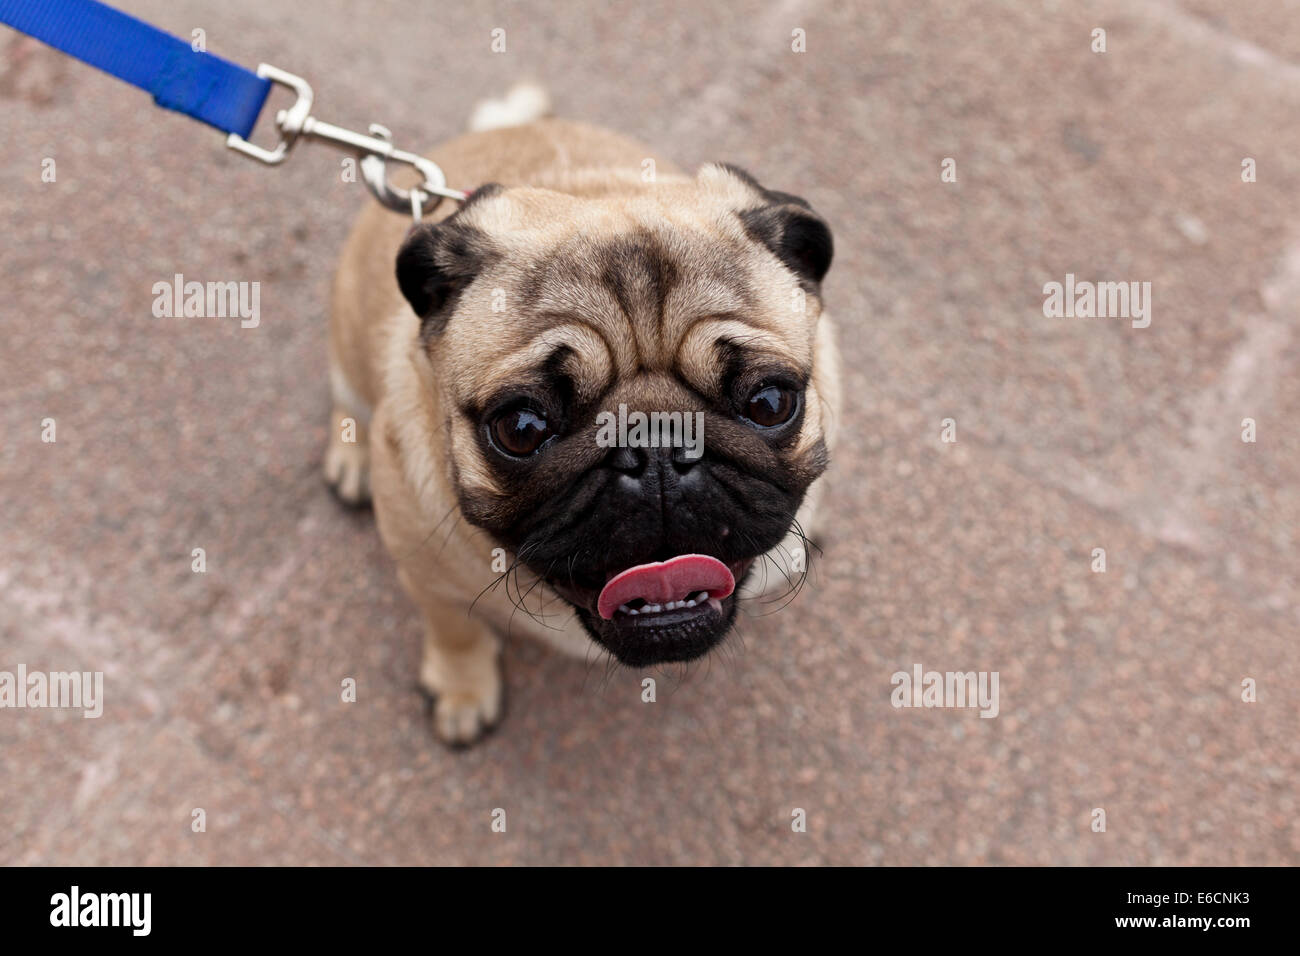 Pug on a blue leash - Stock Image